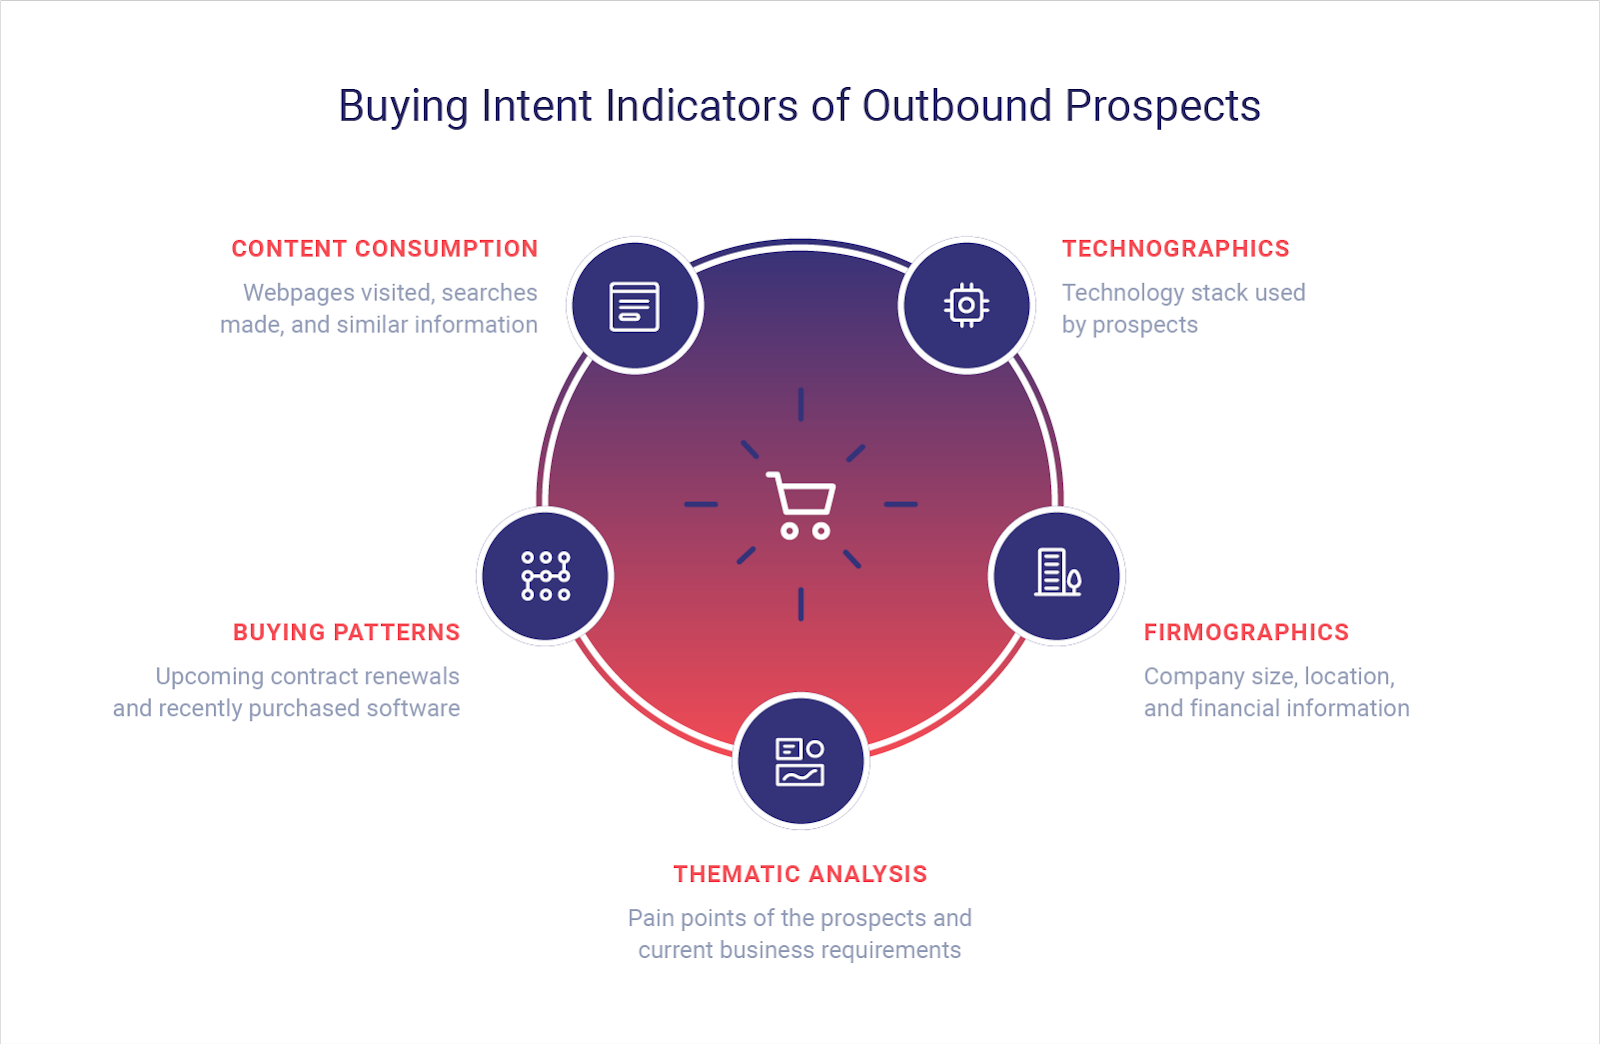 Buying Intent Indicators of Outbound Prospects